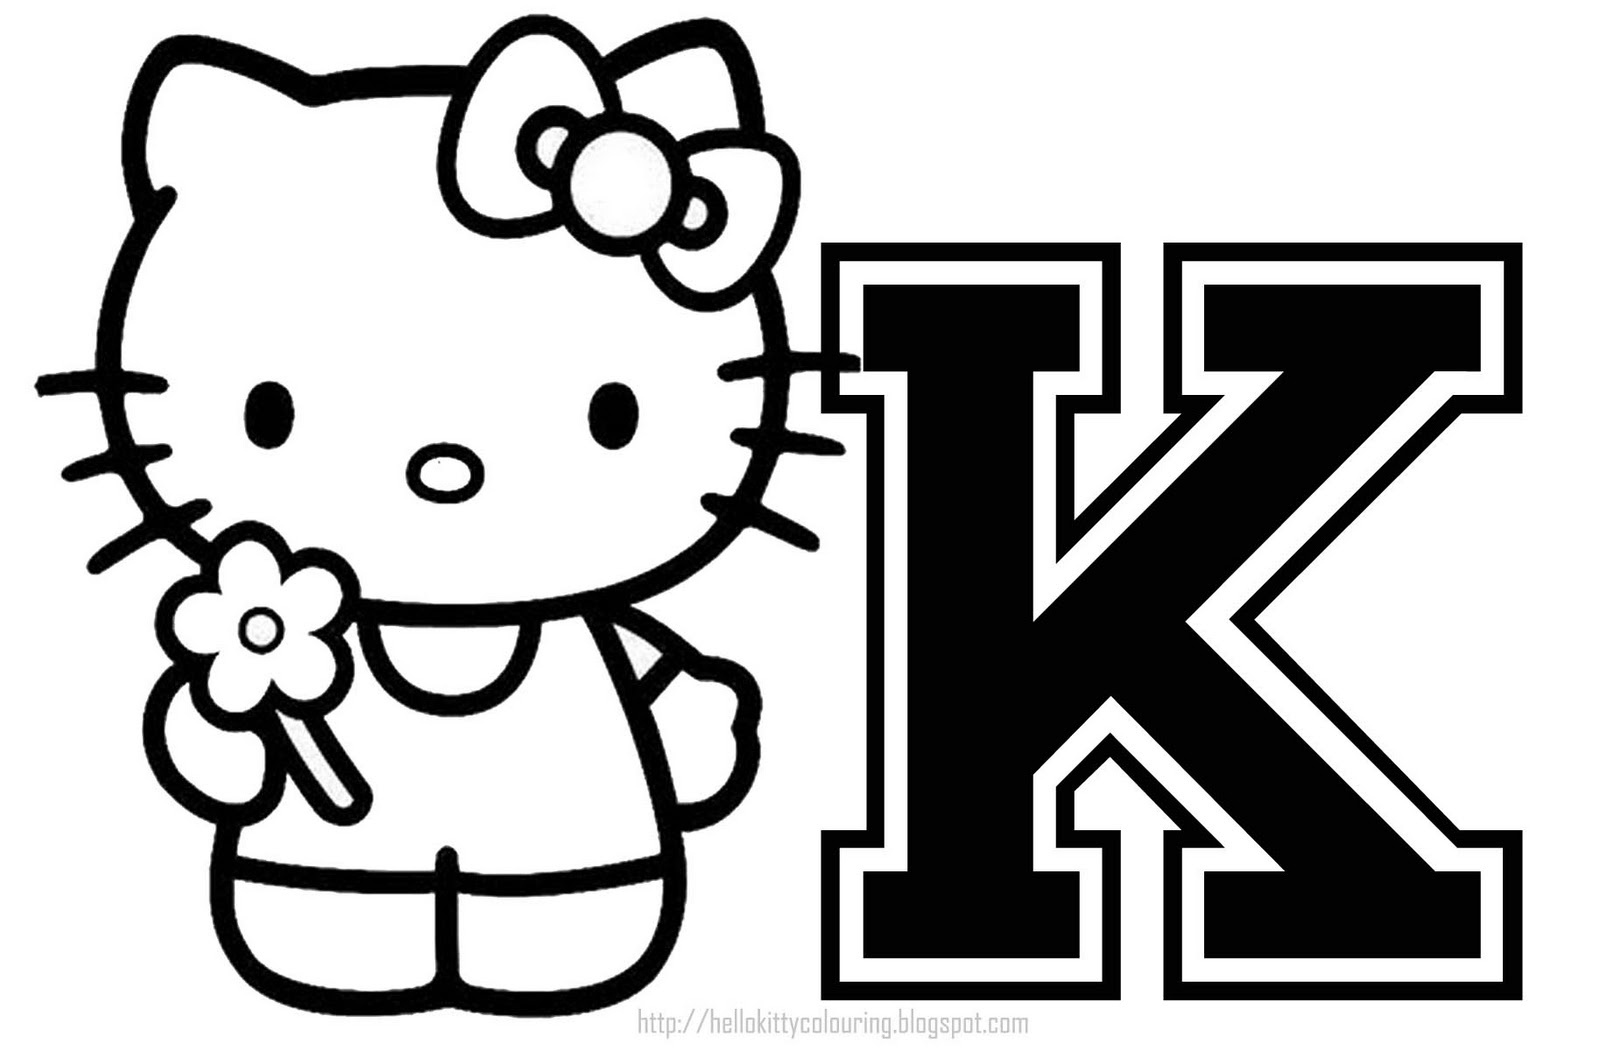 Hello Kitty - Hello Kitty Individual Letters A Z - Free Printable Hello Kitty Alphabet Letters